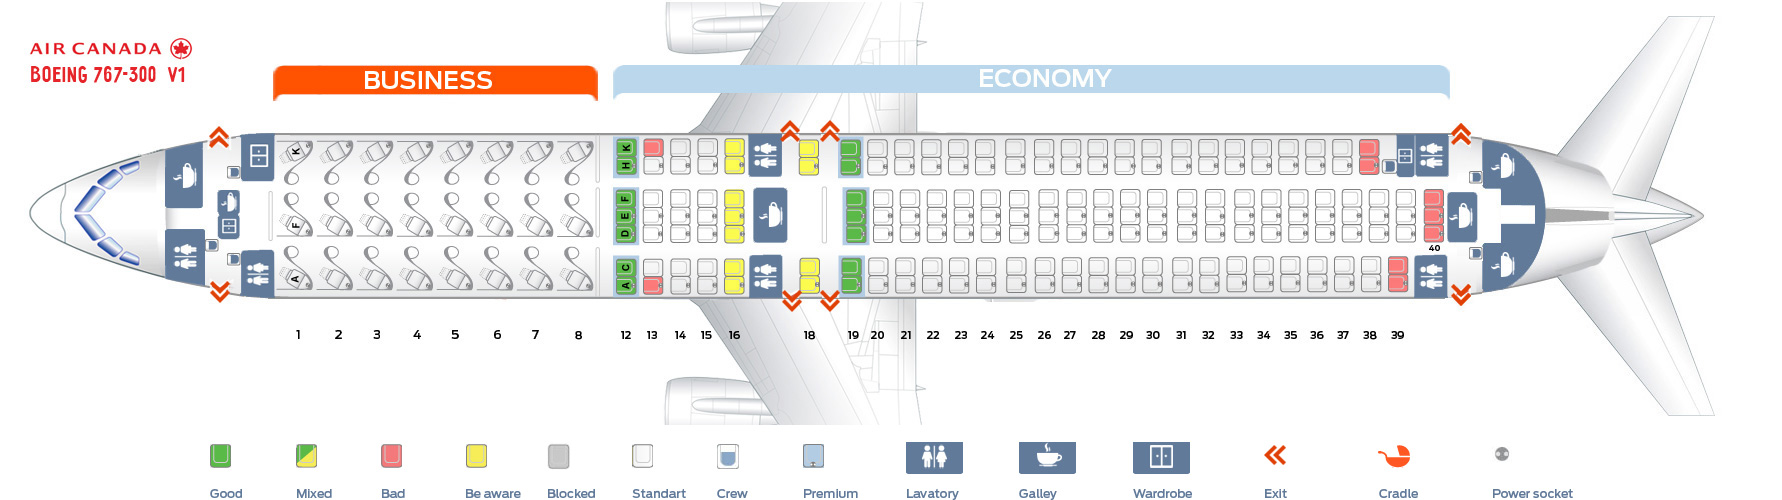 Seat map Air Canada Boeing-767-300 v1